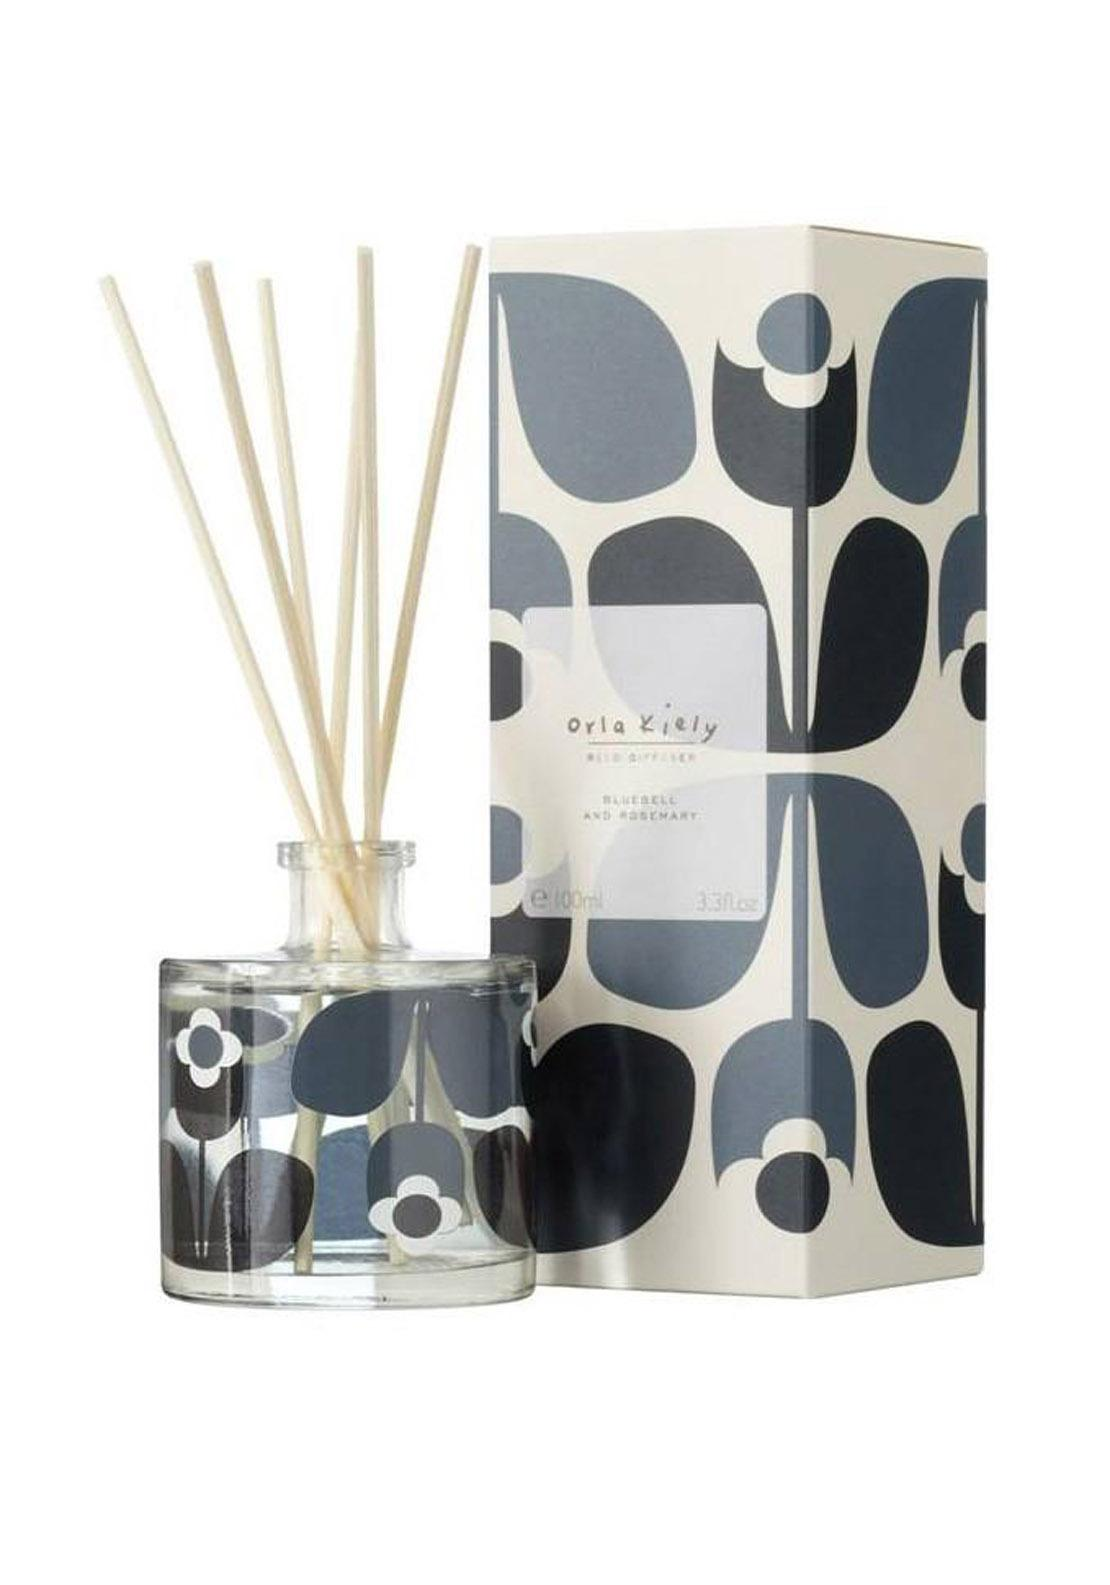 Orla Kiely Diffuser, Bluebell and Rosemary